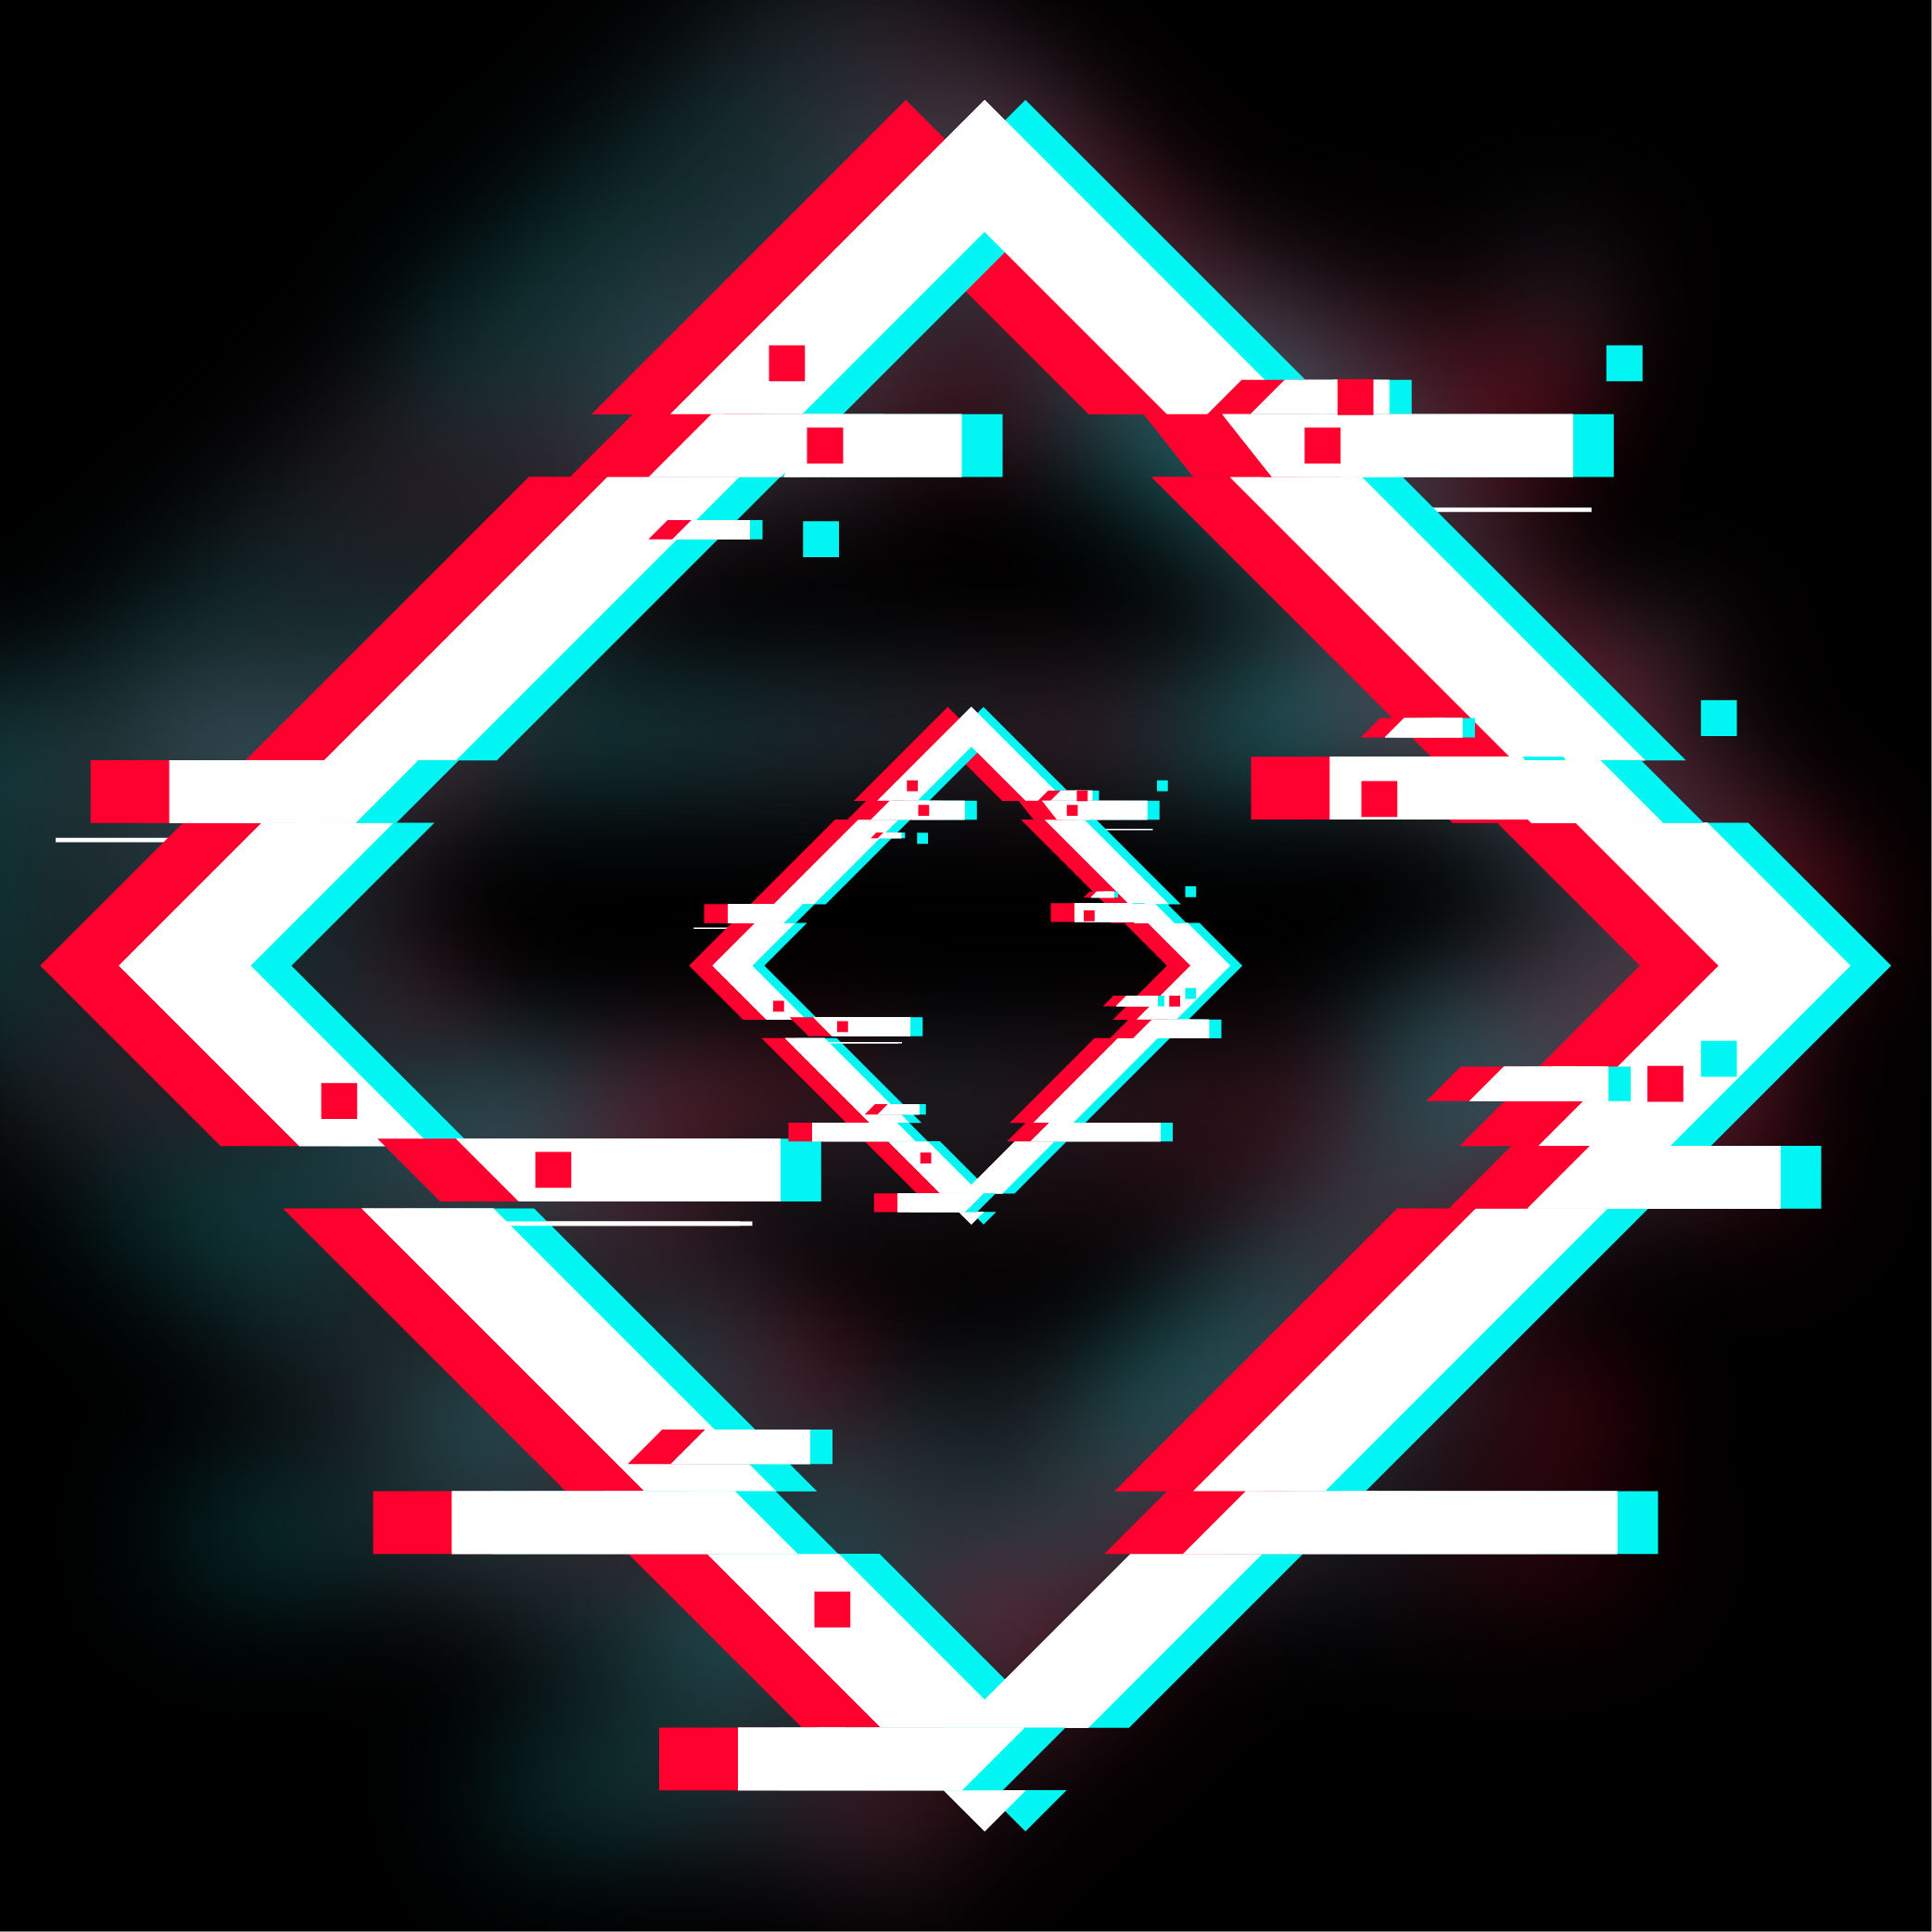 Digital Creations's profile picture